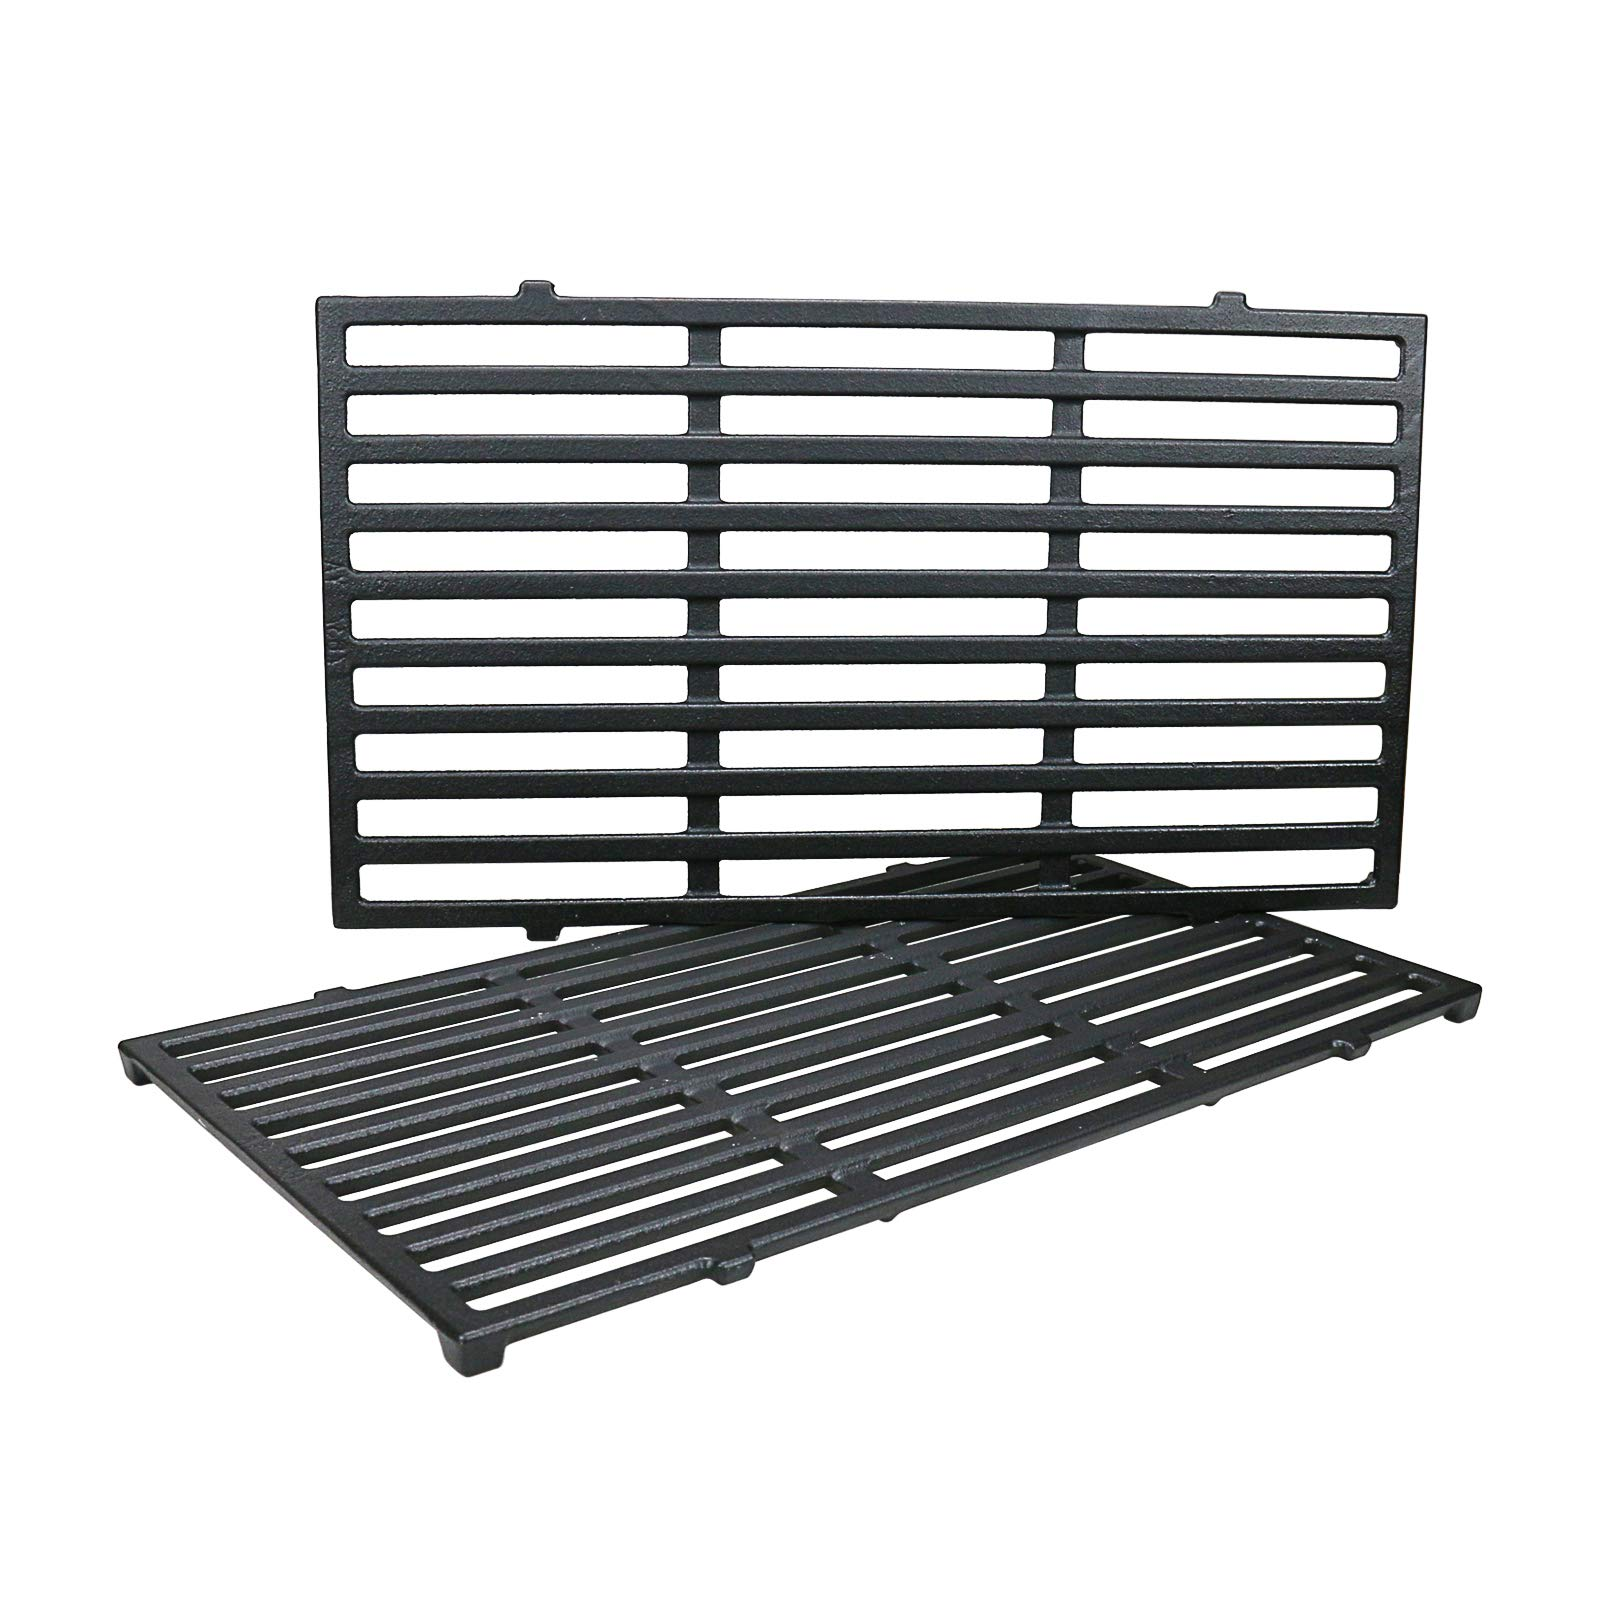 Uniflasy 7637 17.5 Inches Grill Cooking Grid Grates for Weber Spirit 200 Series, Spirit E-210, Spirit E-220, Spirit S-210, Spirit S-220 (2013-2016) Gas Grills with Front-Mounted Control Panels by Uniflasy